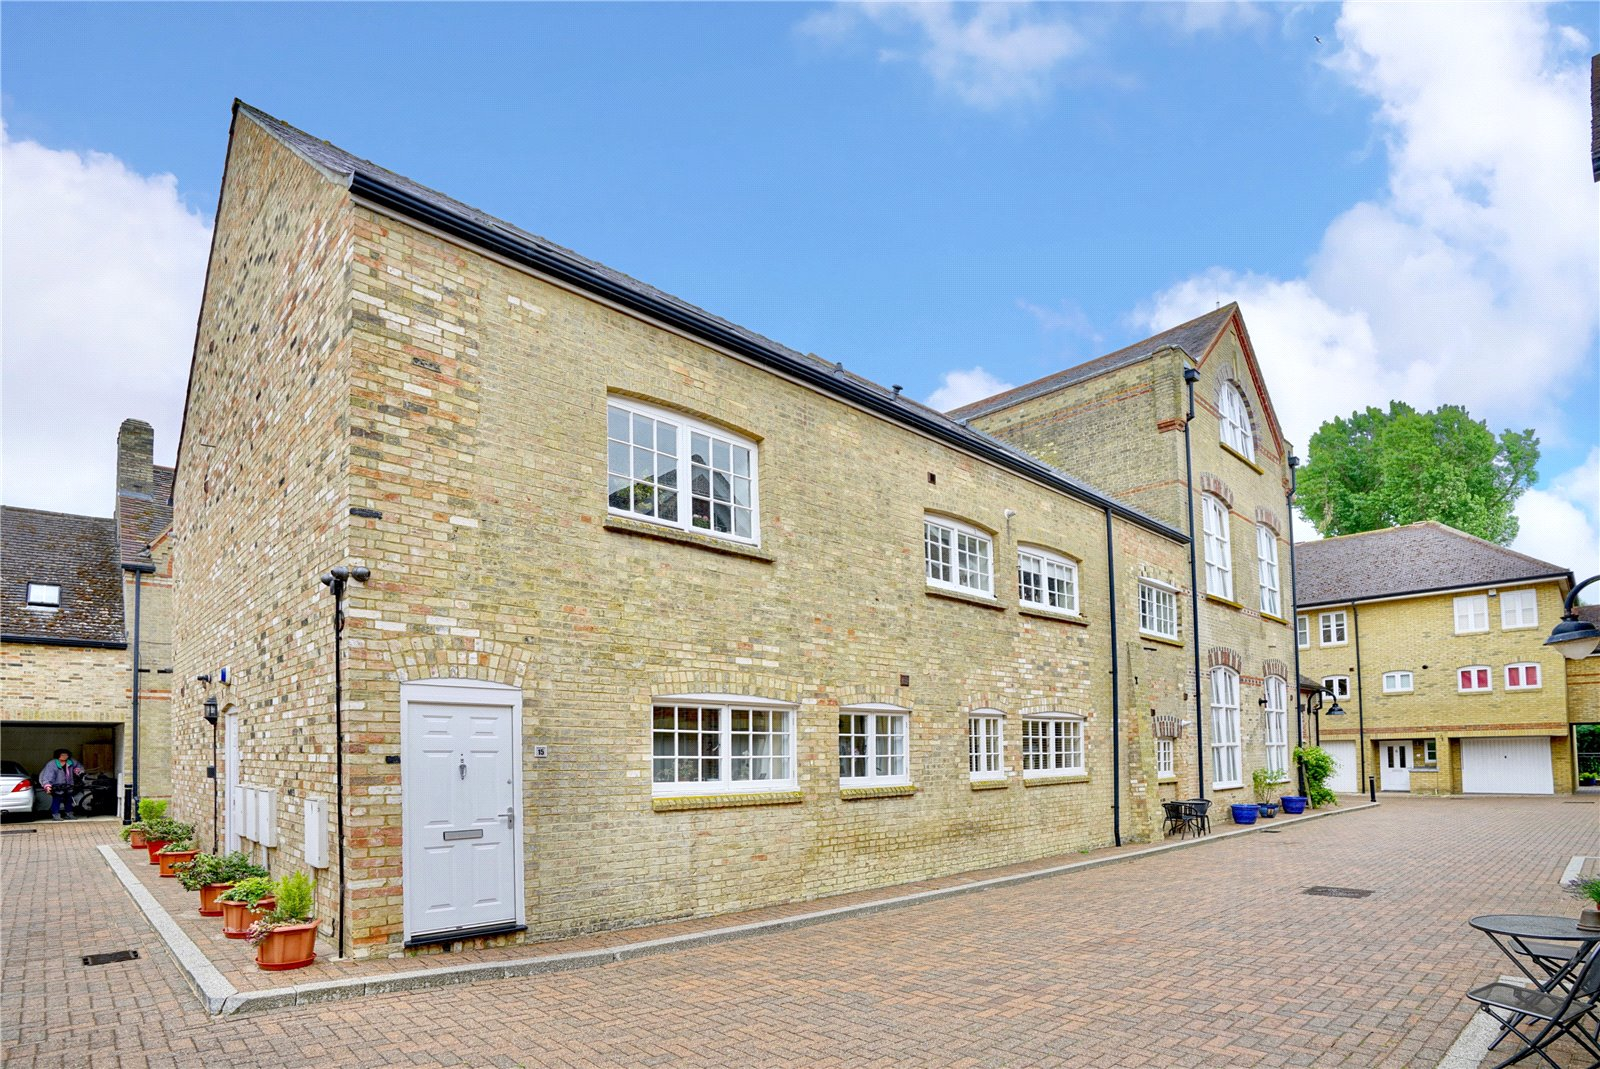 3 bed apartment for sale in Chandlers Wharf, St. Neots  - Property Image 4